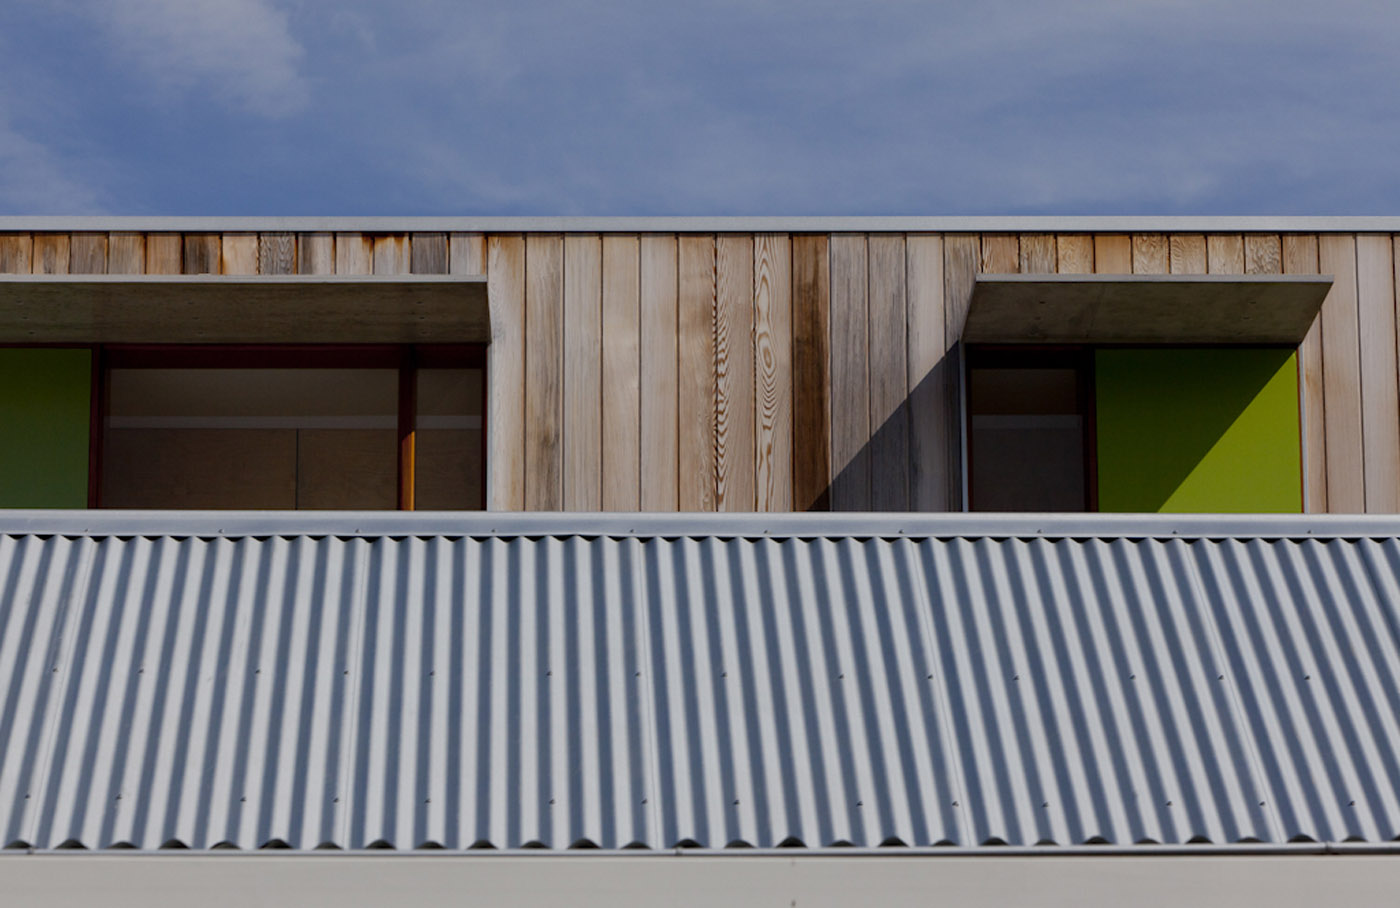 Campbell House by award winning Sydney residential architecture firm Sam Crawford Architects. New addition with flat window overhang and coloured panels